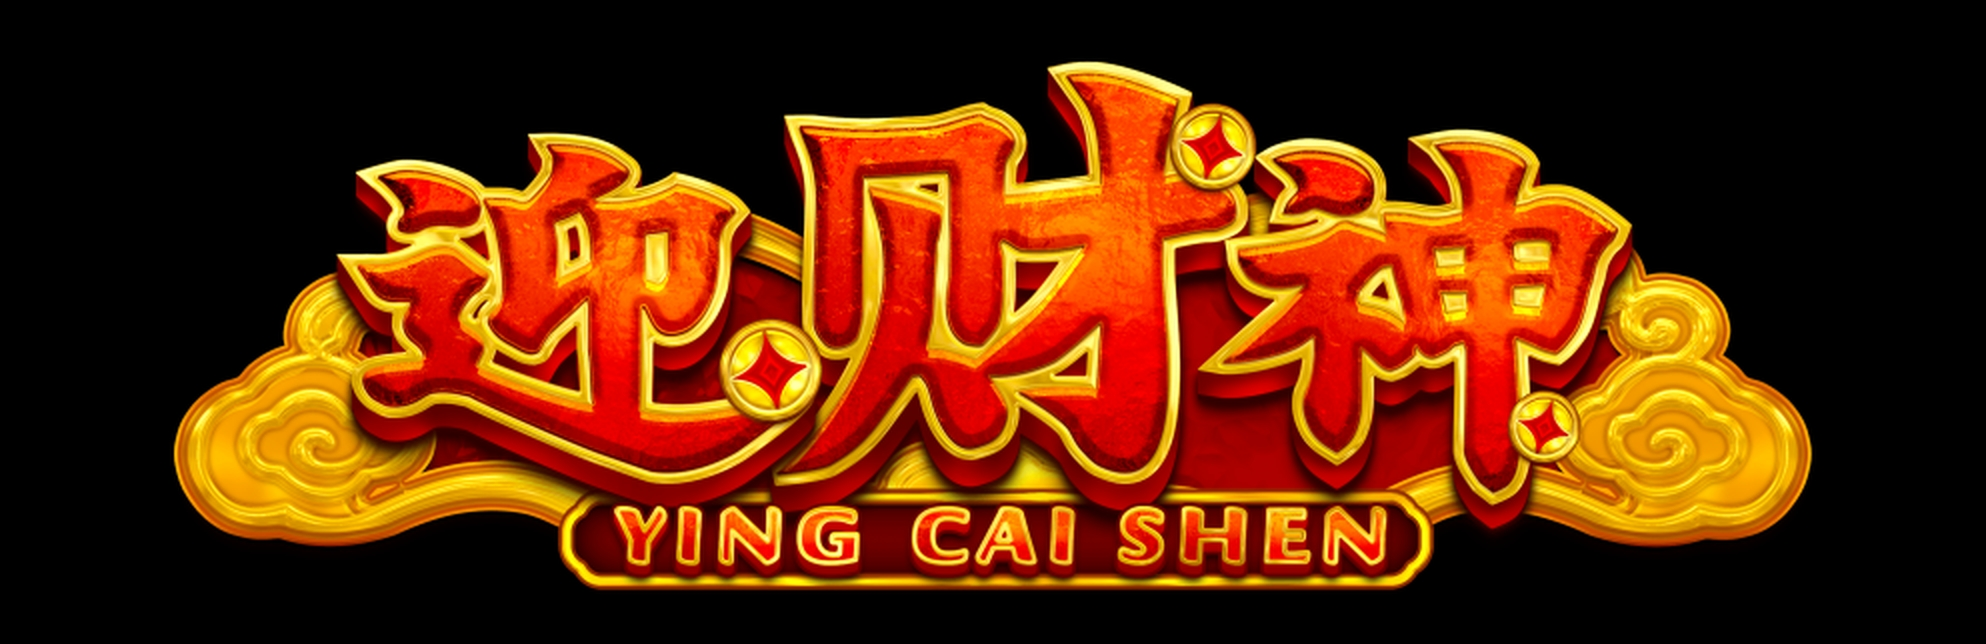 The Ying Cai Shen (TOP TREND GAMING) Online Slot Demo Game by Top Trend Gaming